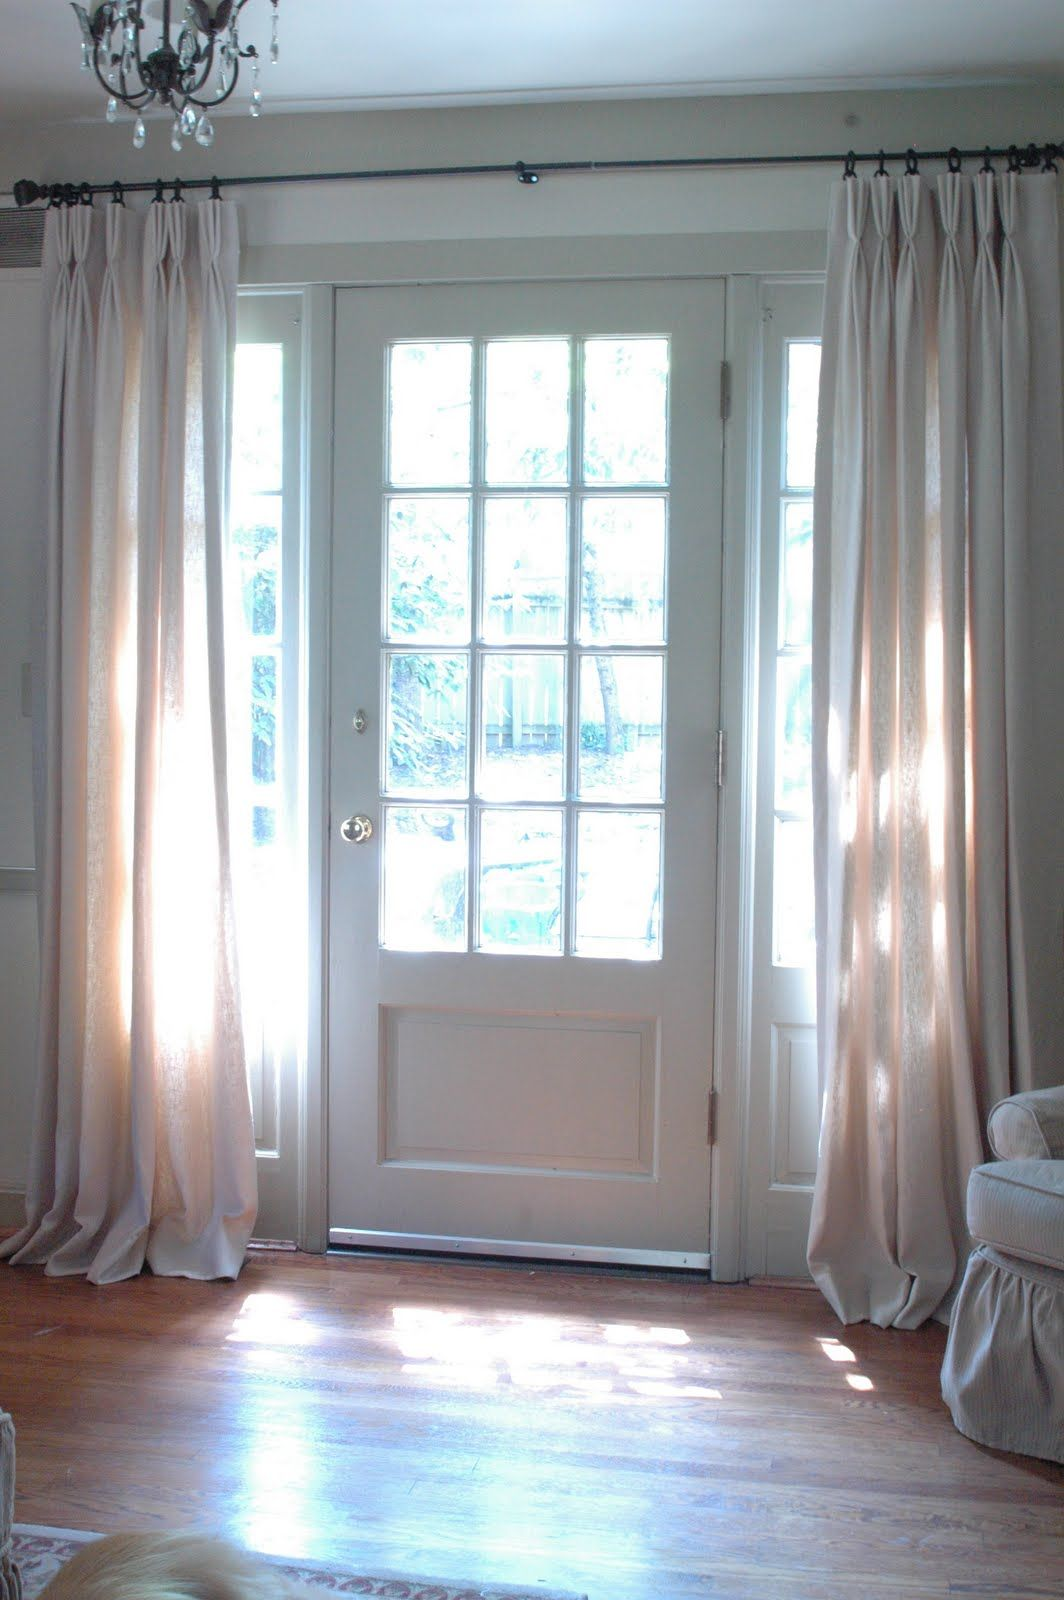 More Hanging Curtains By The Front Door Only If Could Be Hung Without